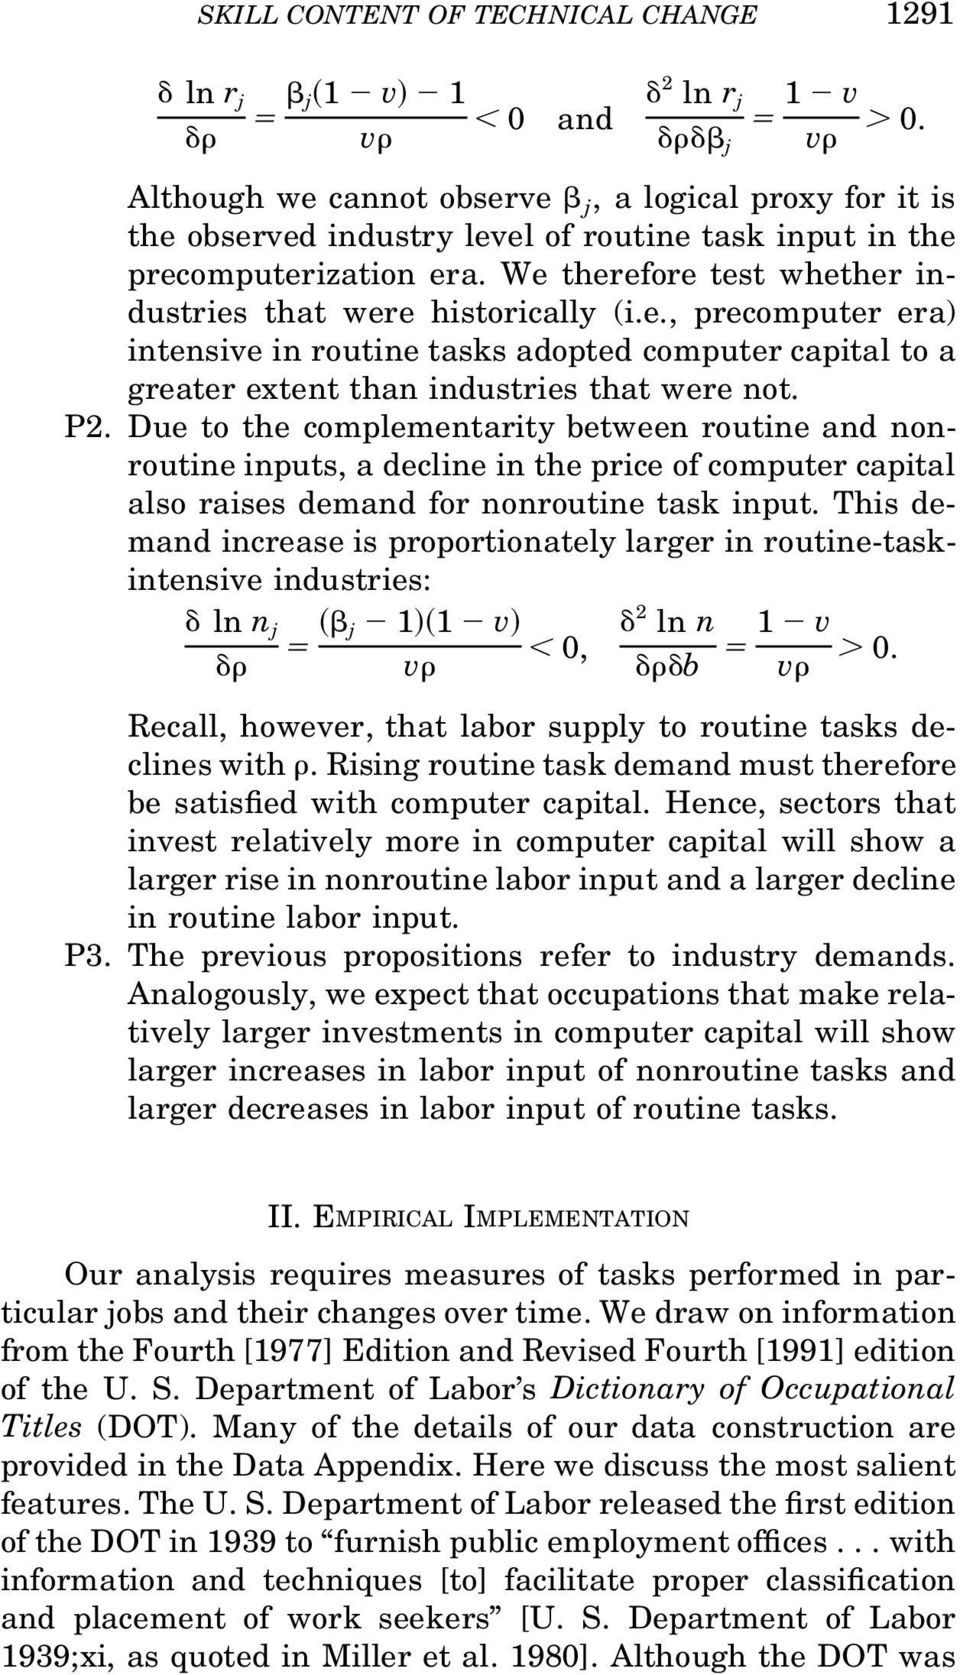 We therefore test whether industries that were historically (i.e., precomputer era) intensive in routine tasks adopted computer capital to a greater extent than industries that were not. P2.